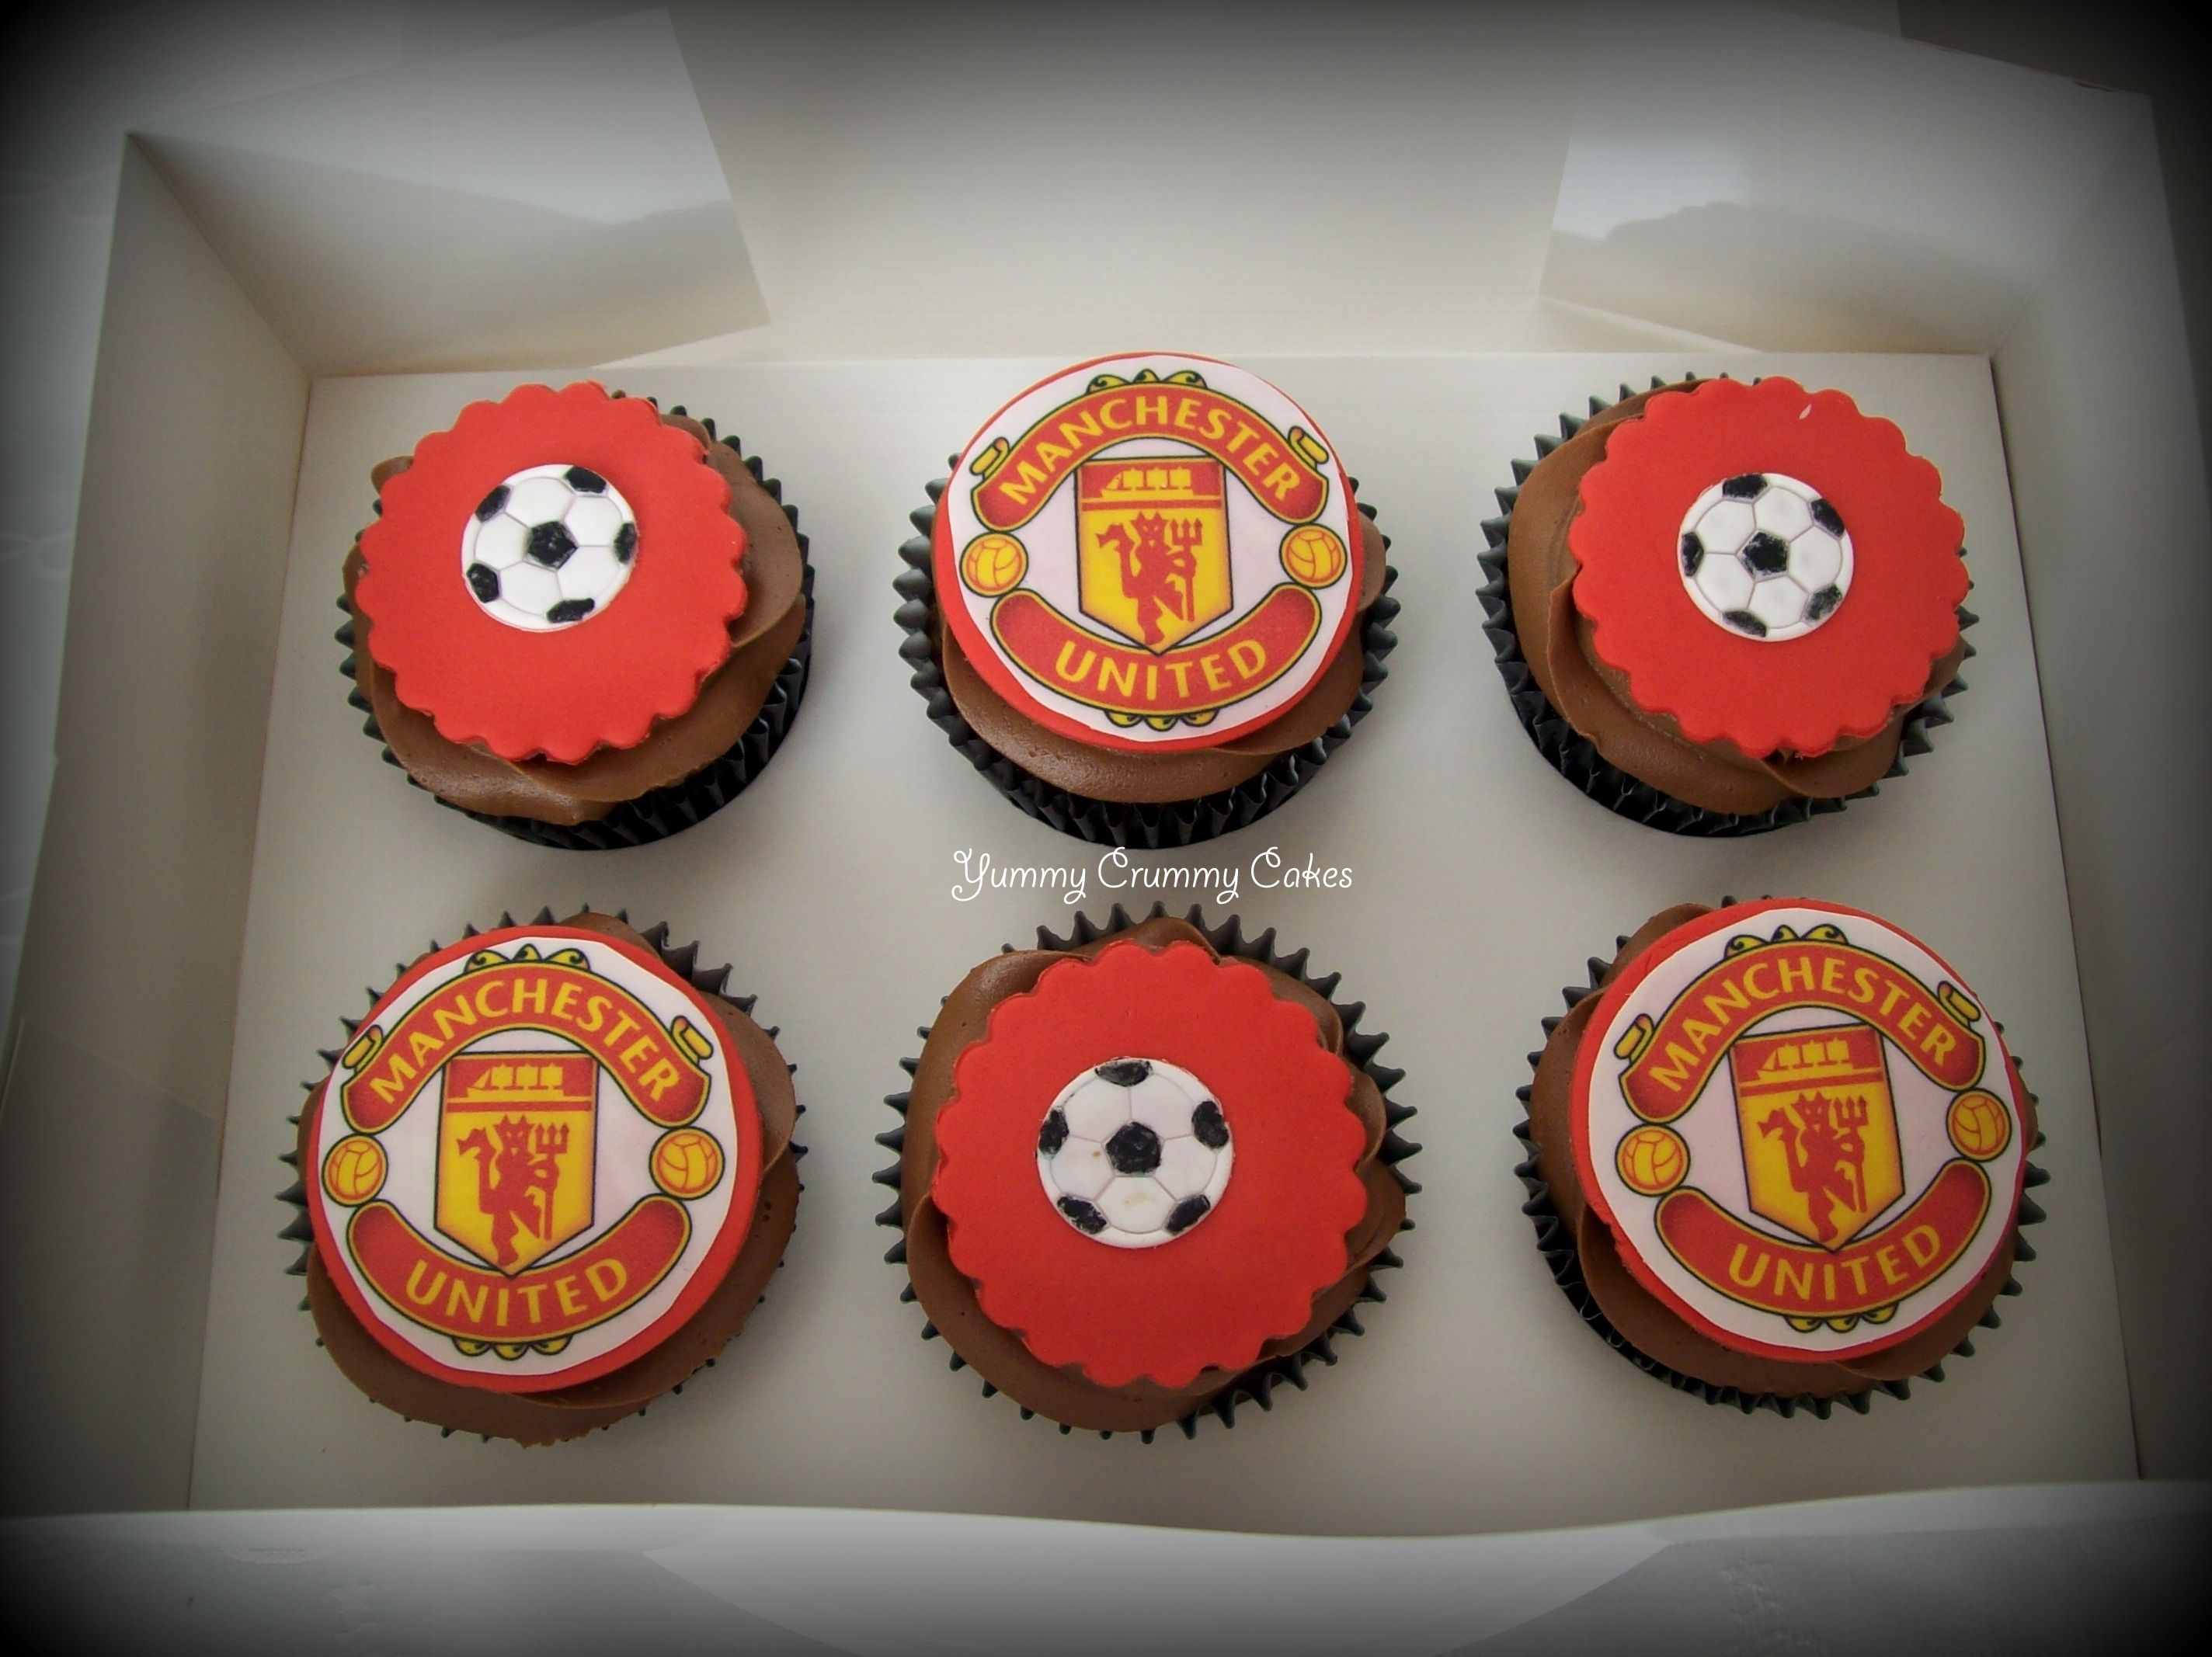 Yummy Crummy Cakes Soccer Birthday Cakes Manchester United Birthday Cake Soccer Birthday Parties